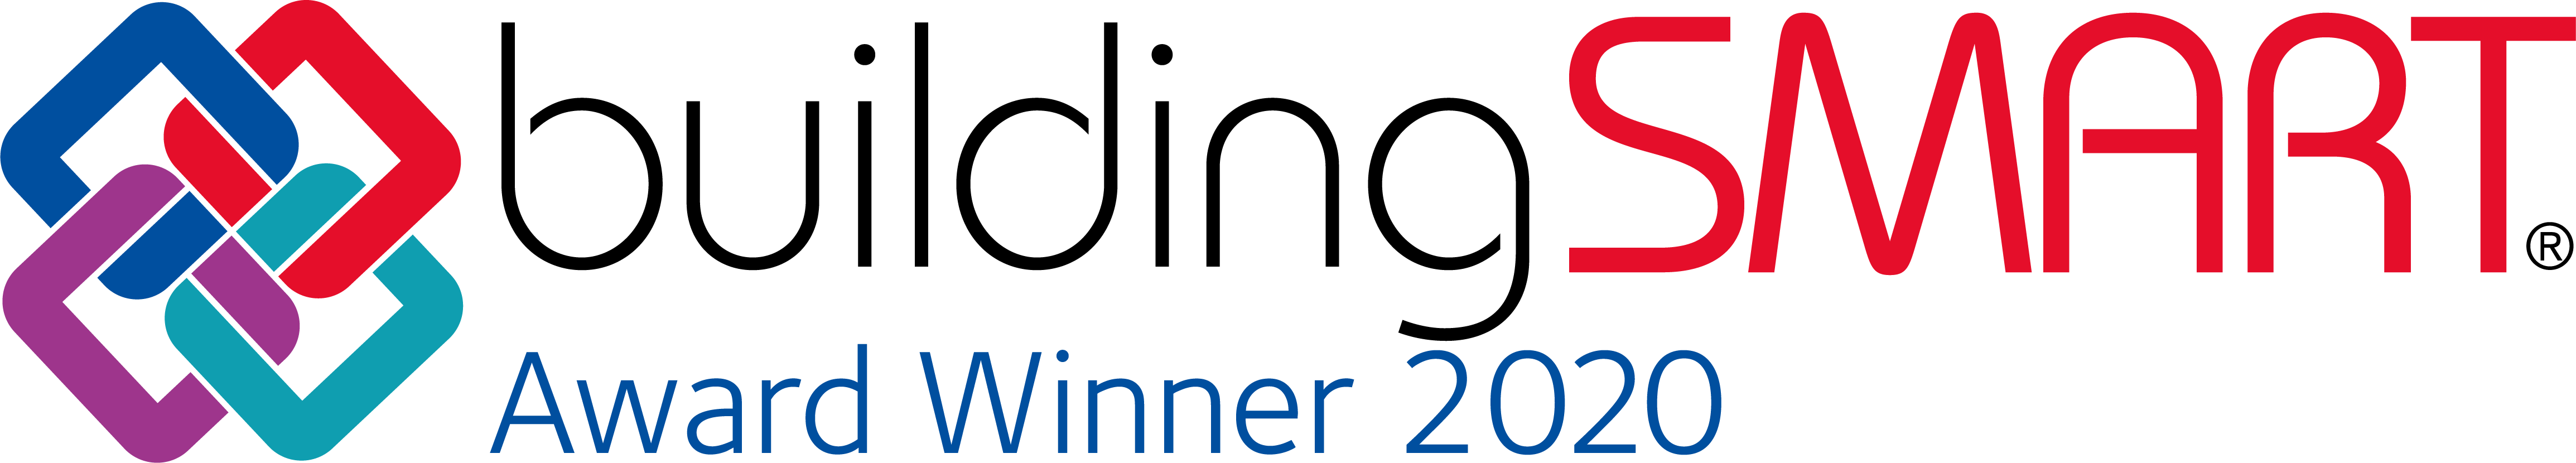 buildingSMART Awards 2020 Technology Winner